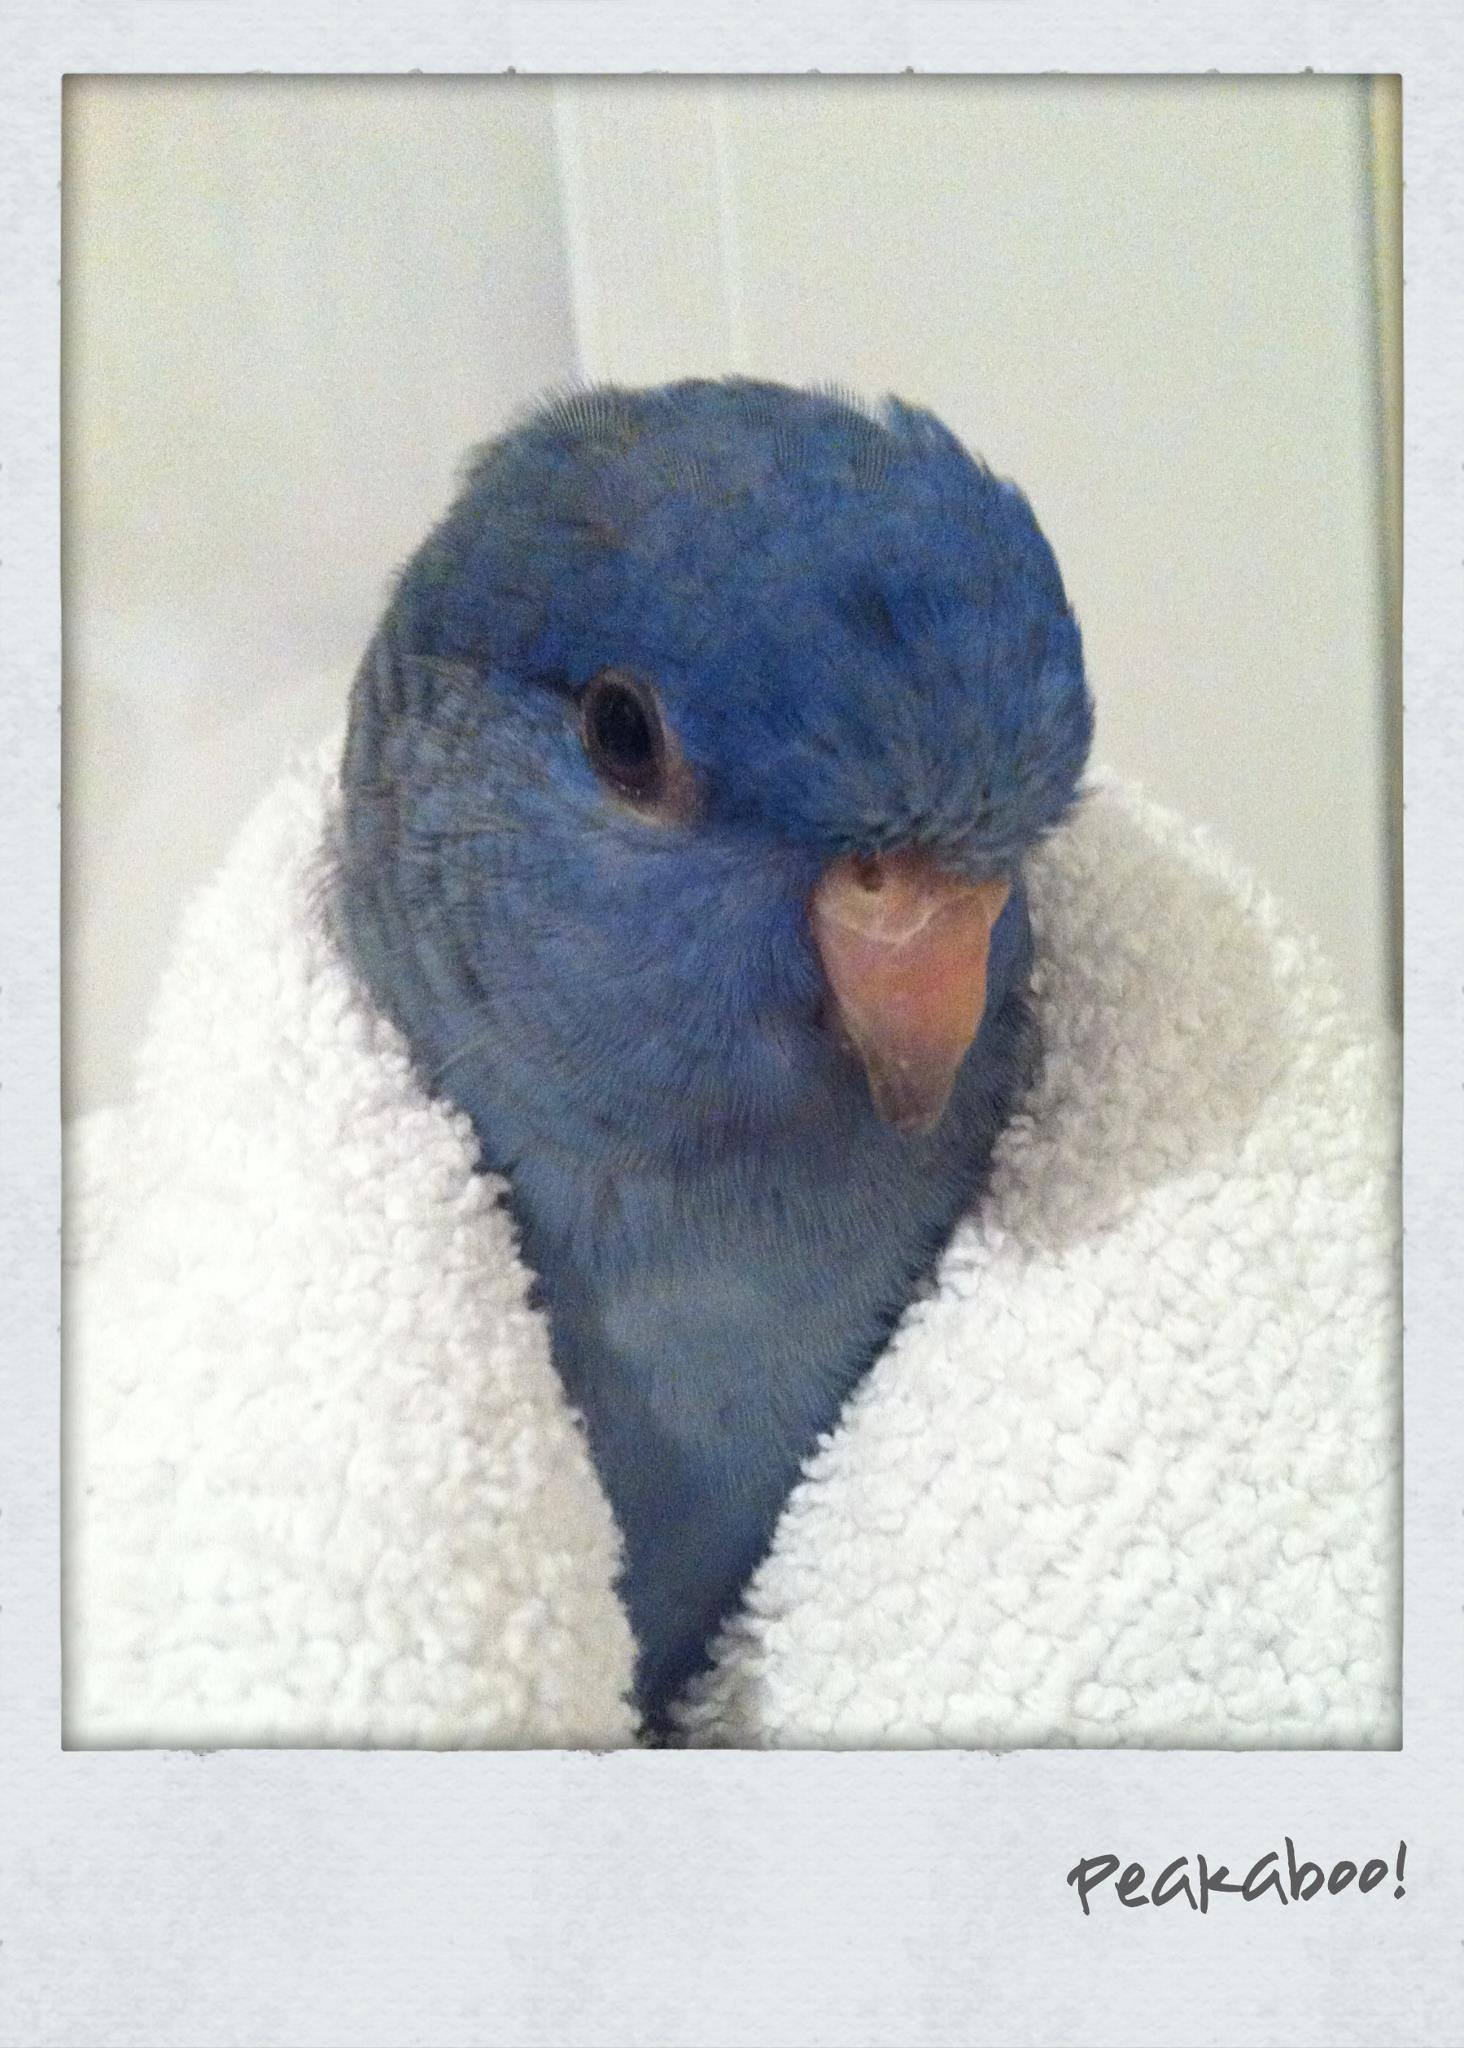 parrot wrapped up peeaboo.jpg